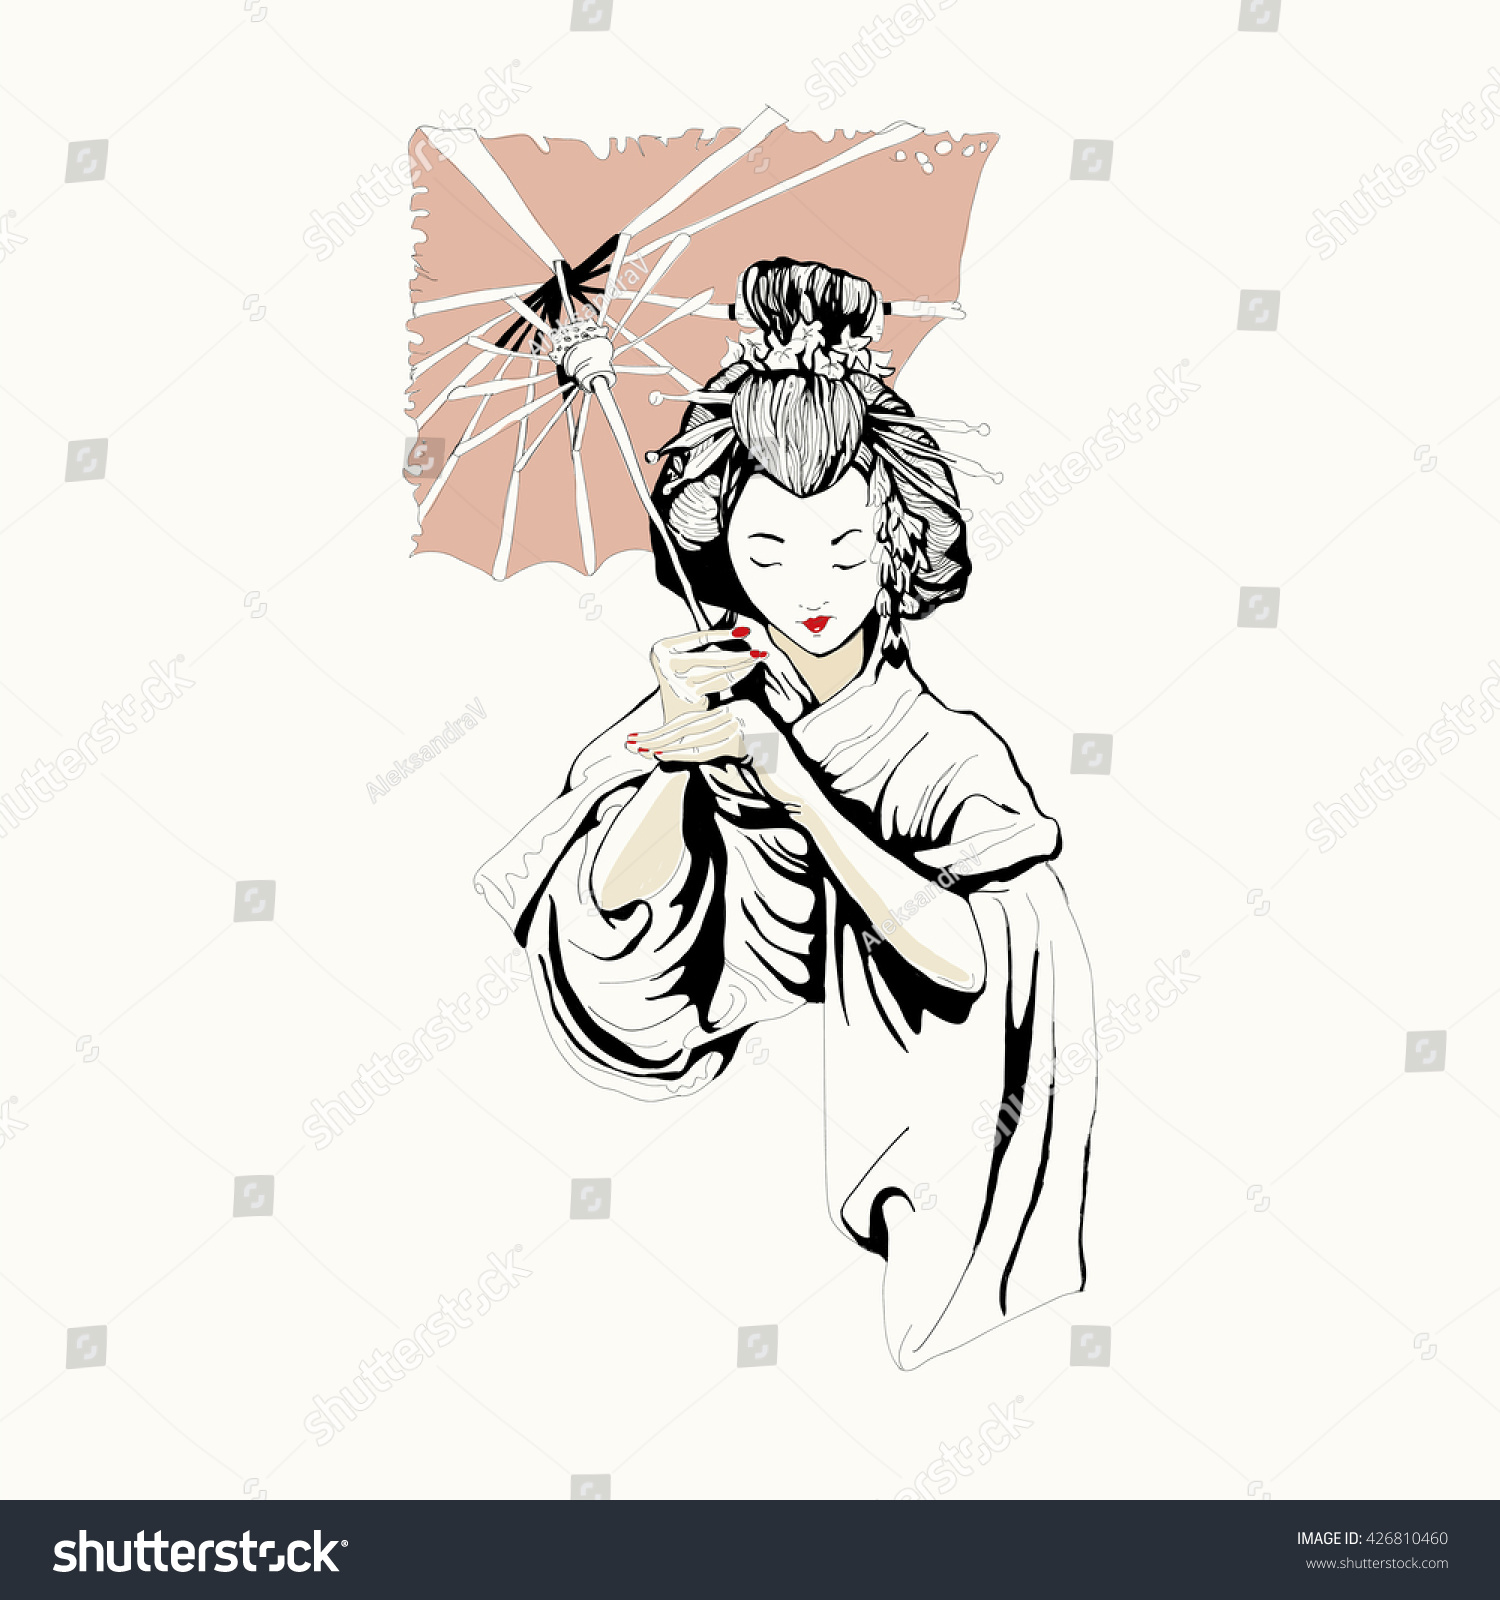 Japanese Geisha Girl Woman Drawing Vector Stock Vector